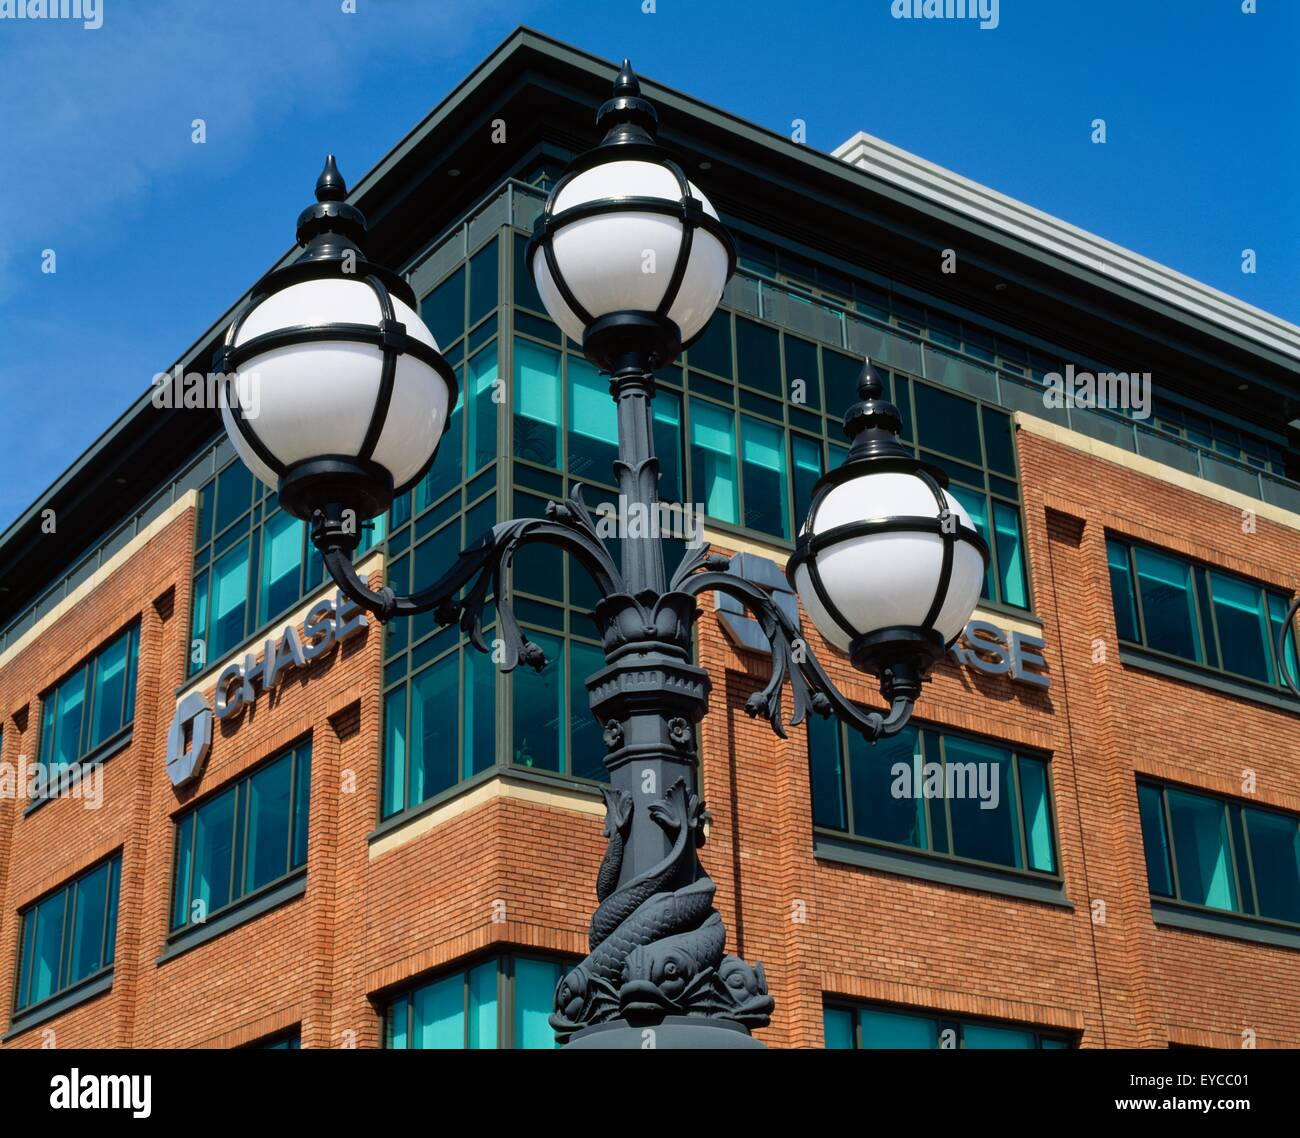 Dublin,Co Dublin,Ireland;Ornate Streetlight In The International Financial Services Centre - Stock Image